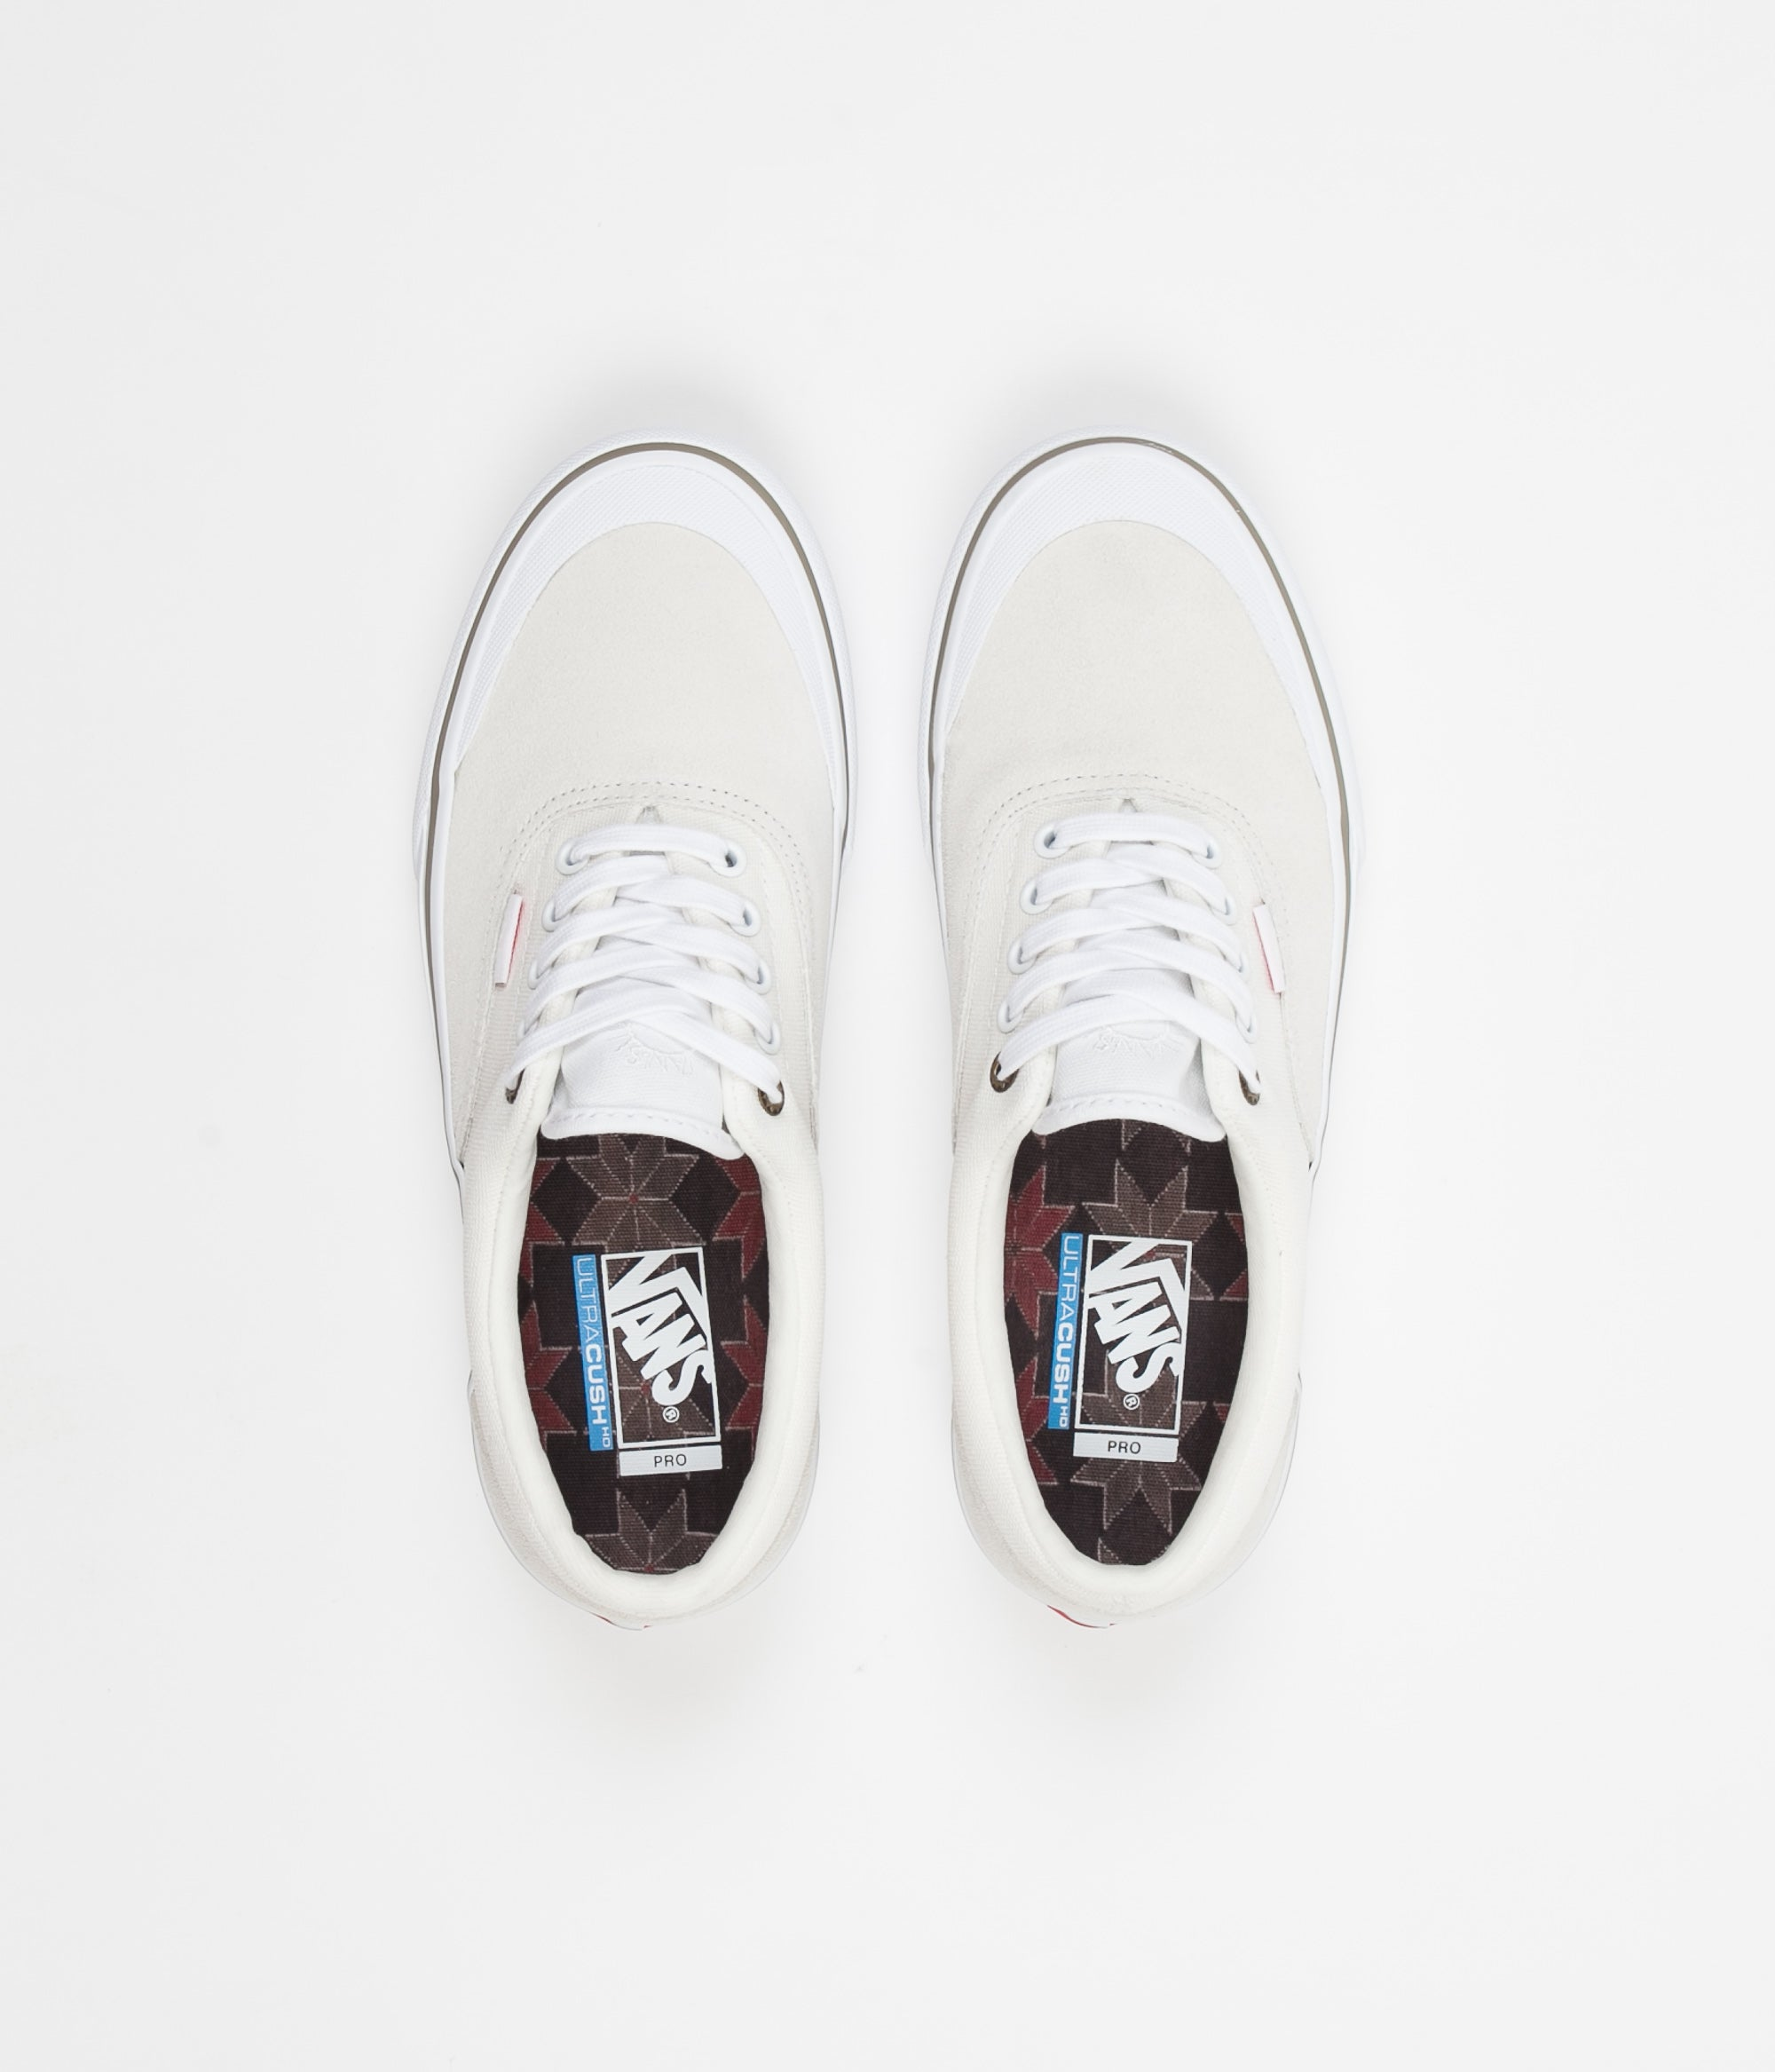 0dd697a034 Vans Era Pro Dakota Roche Shoes - Marshmallow   White ...